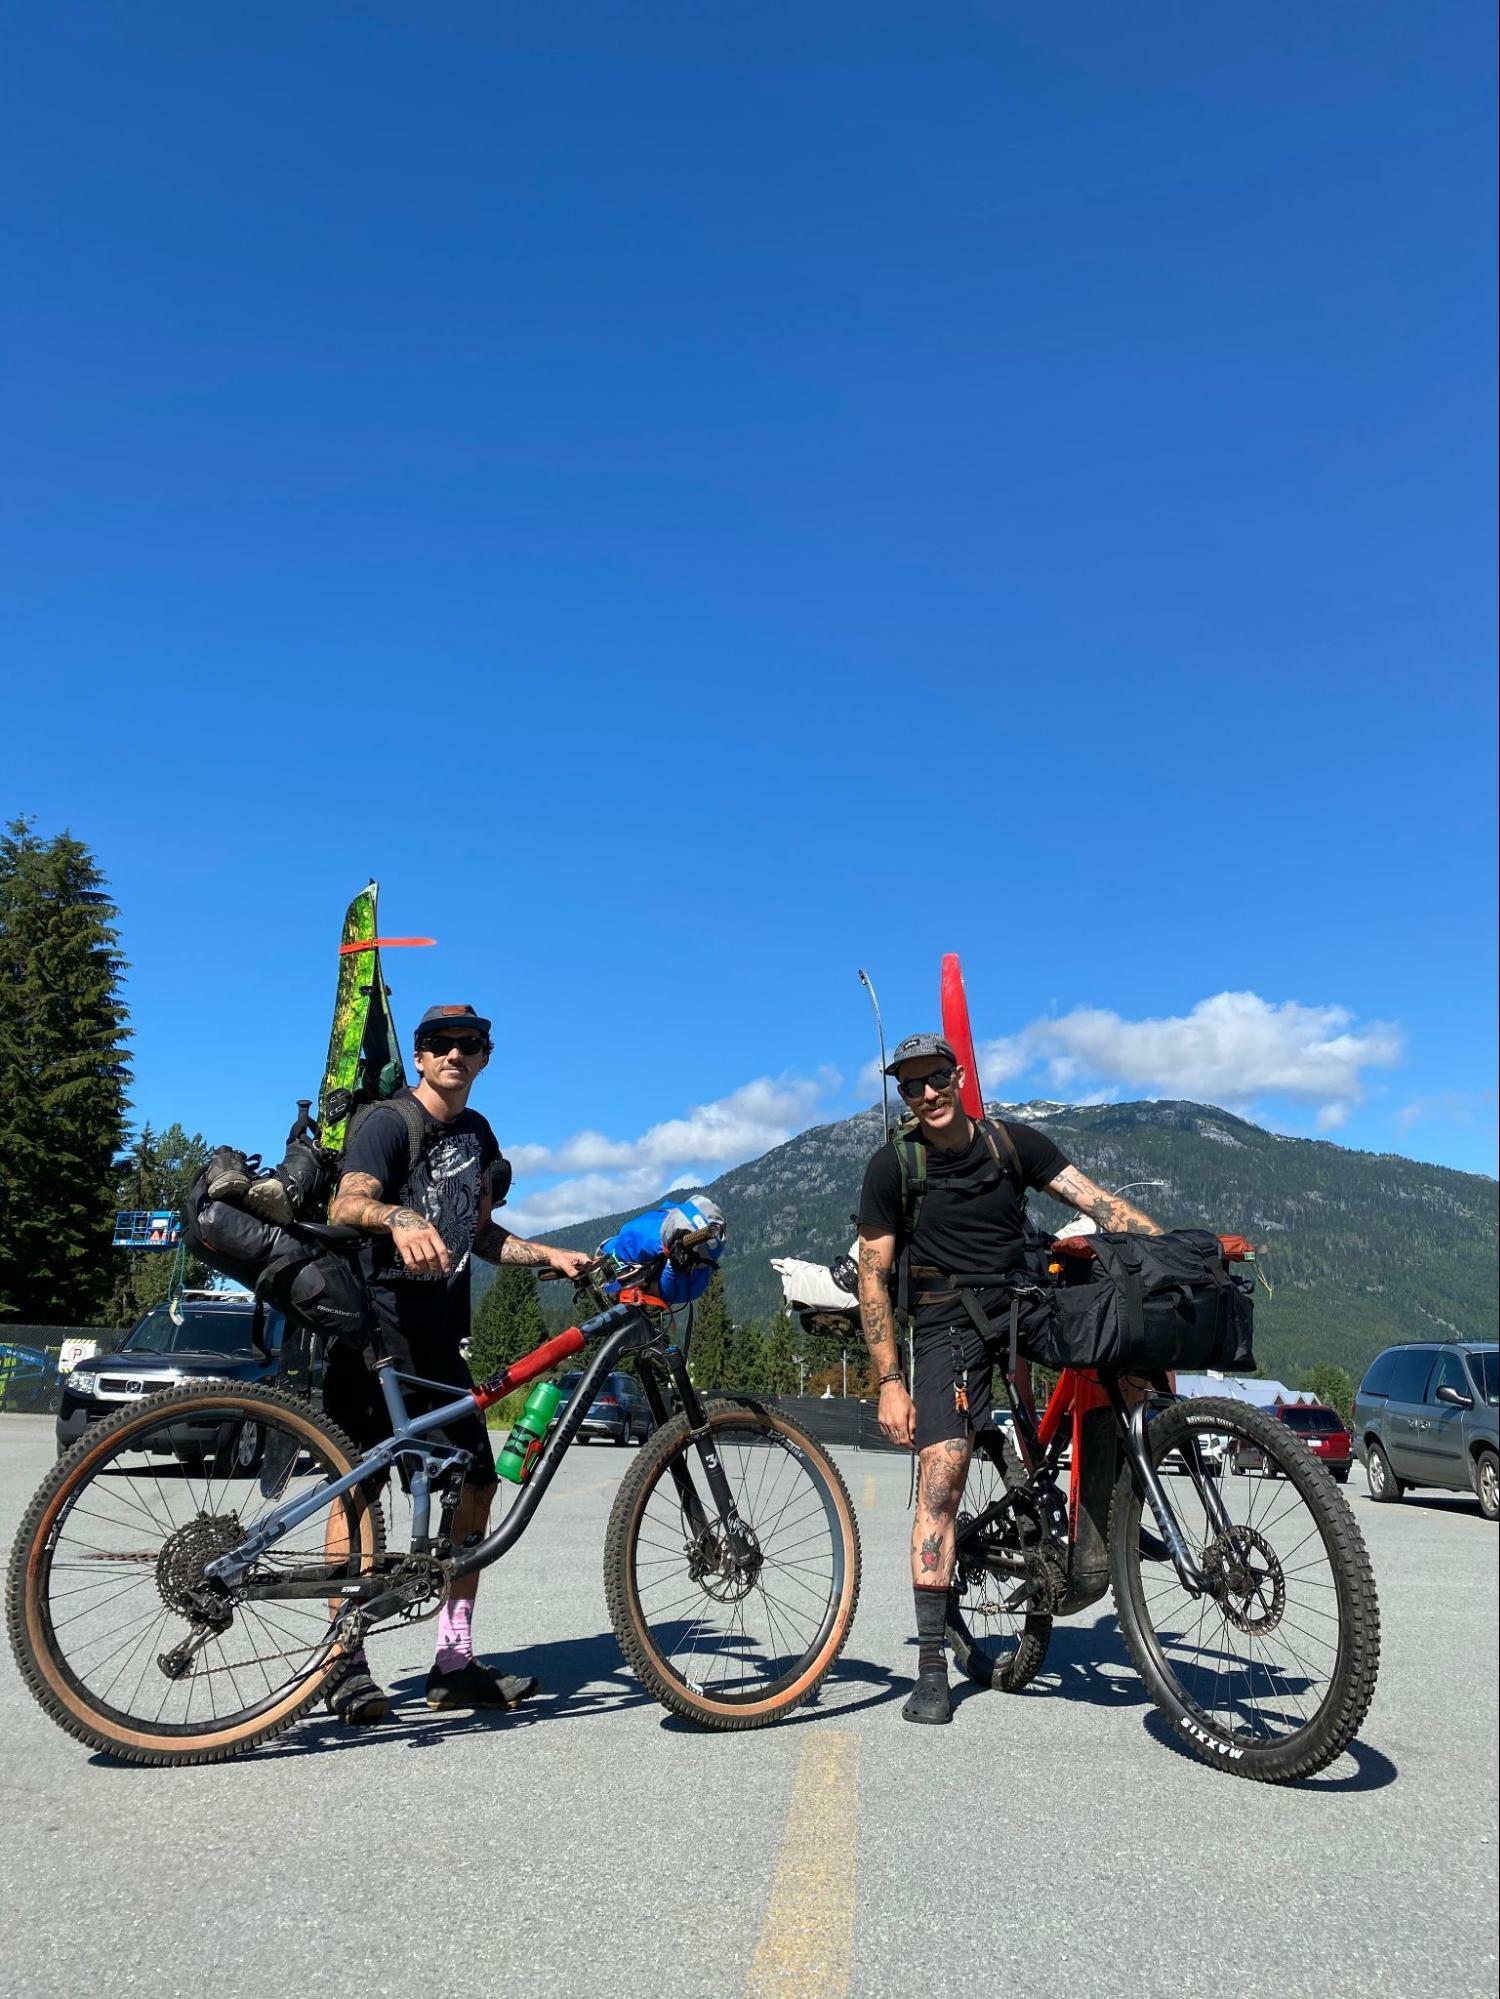 Bikepacking on ebikes with splitboards